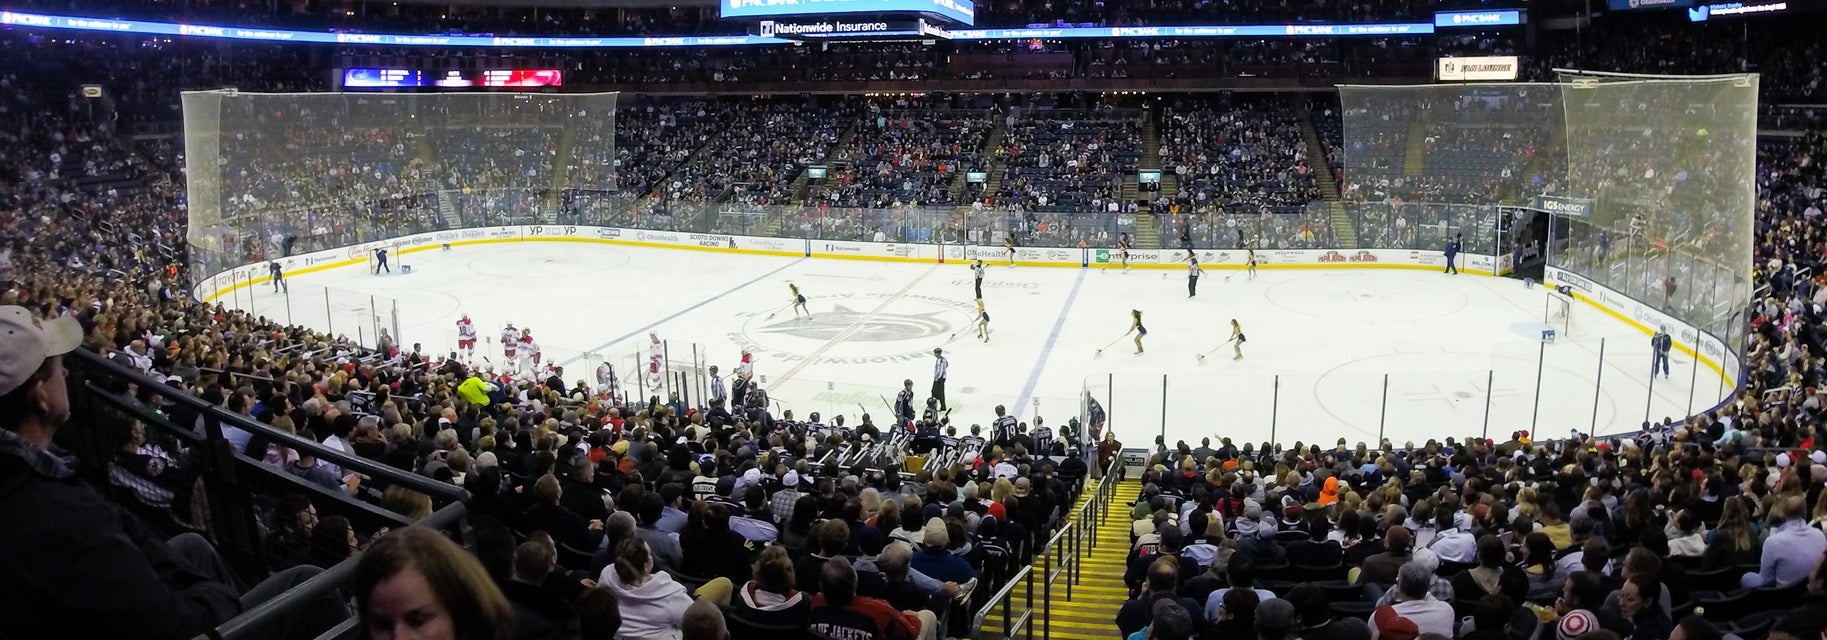 Seat view from Lower Glass